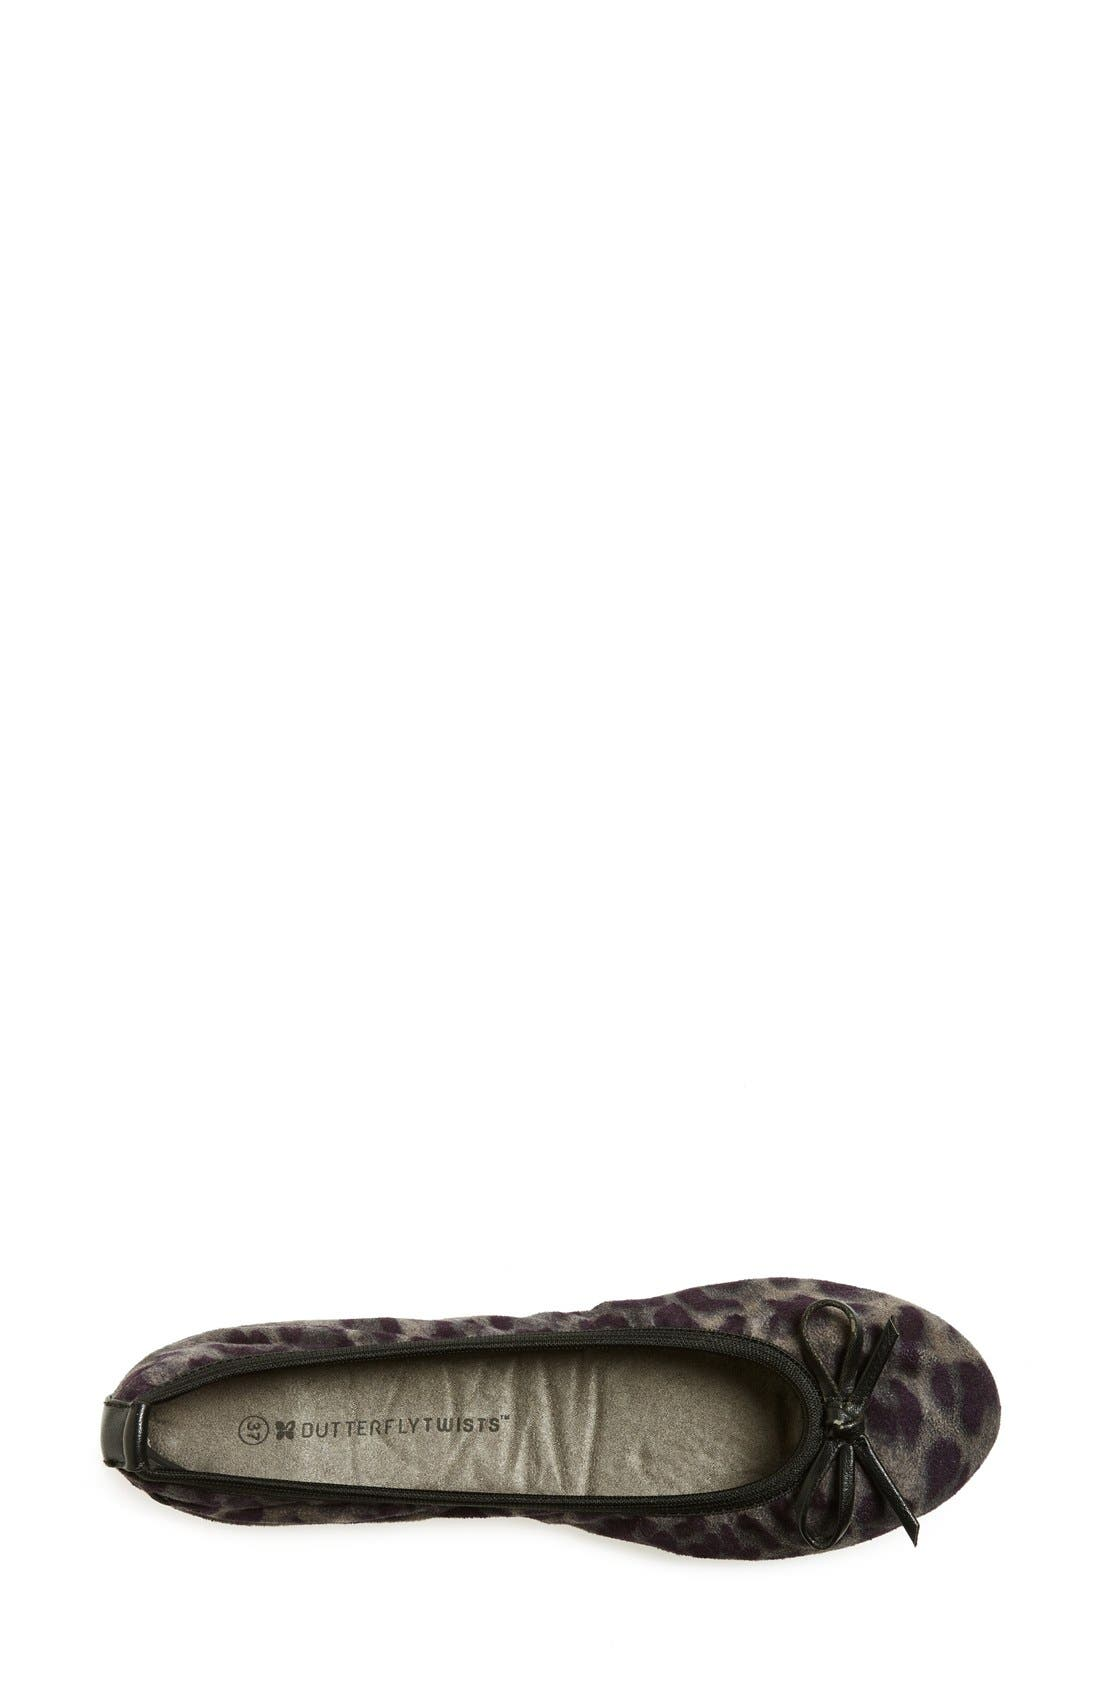 BUTTERFLY TWISTS, 'Cleo Leopard' Foldable Ballerina Flat, Alternate thumbnail 4, color, 020